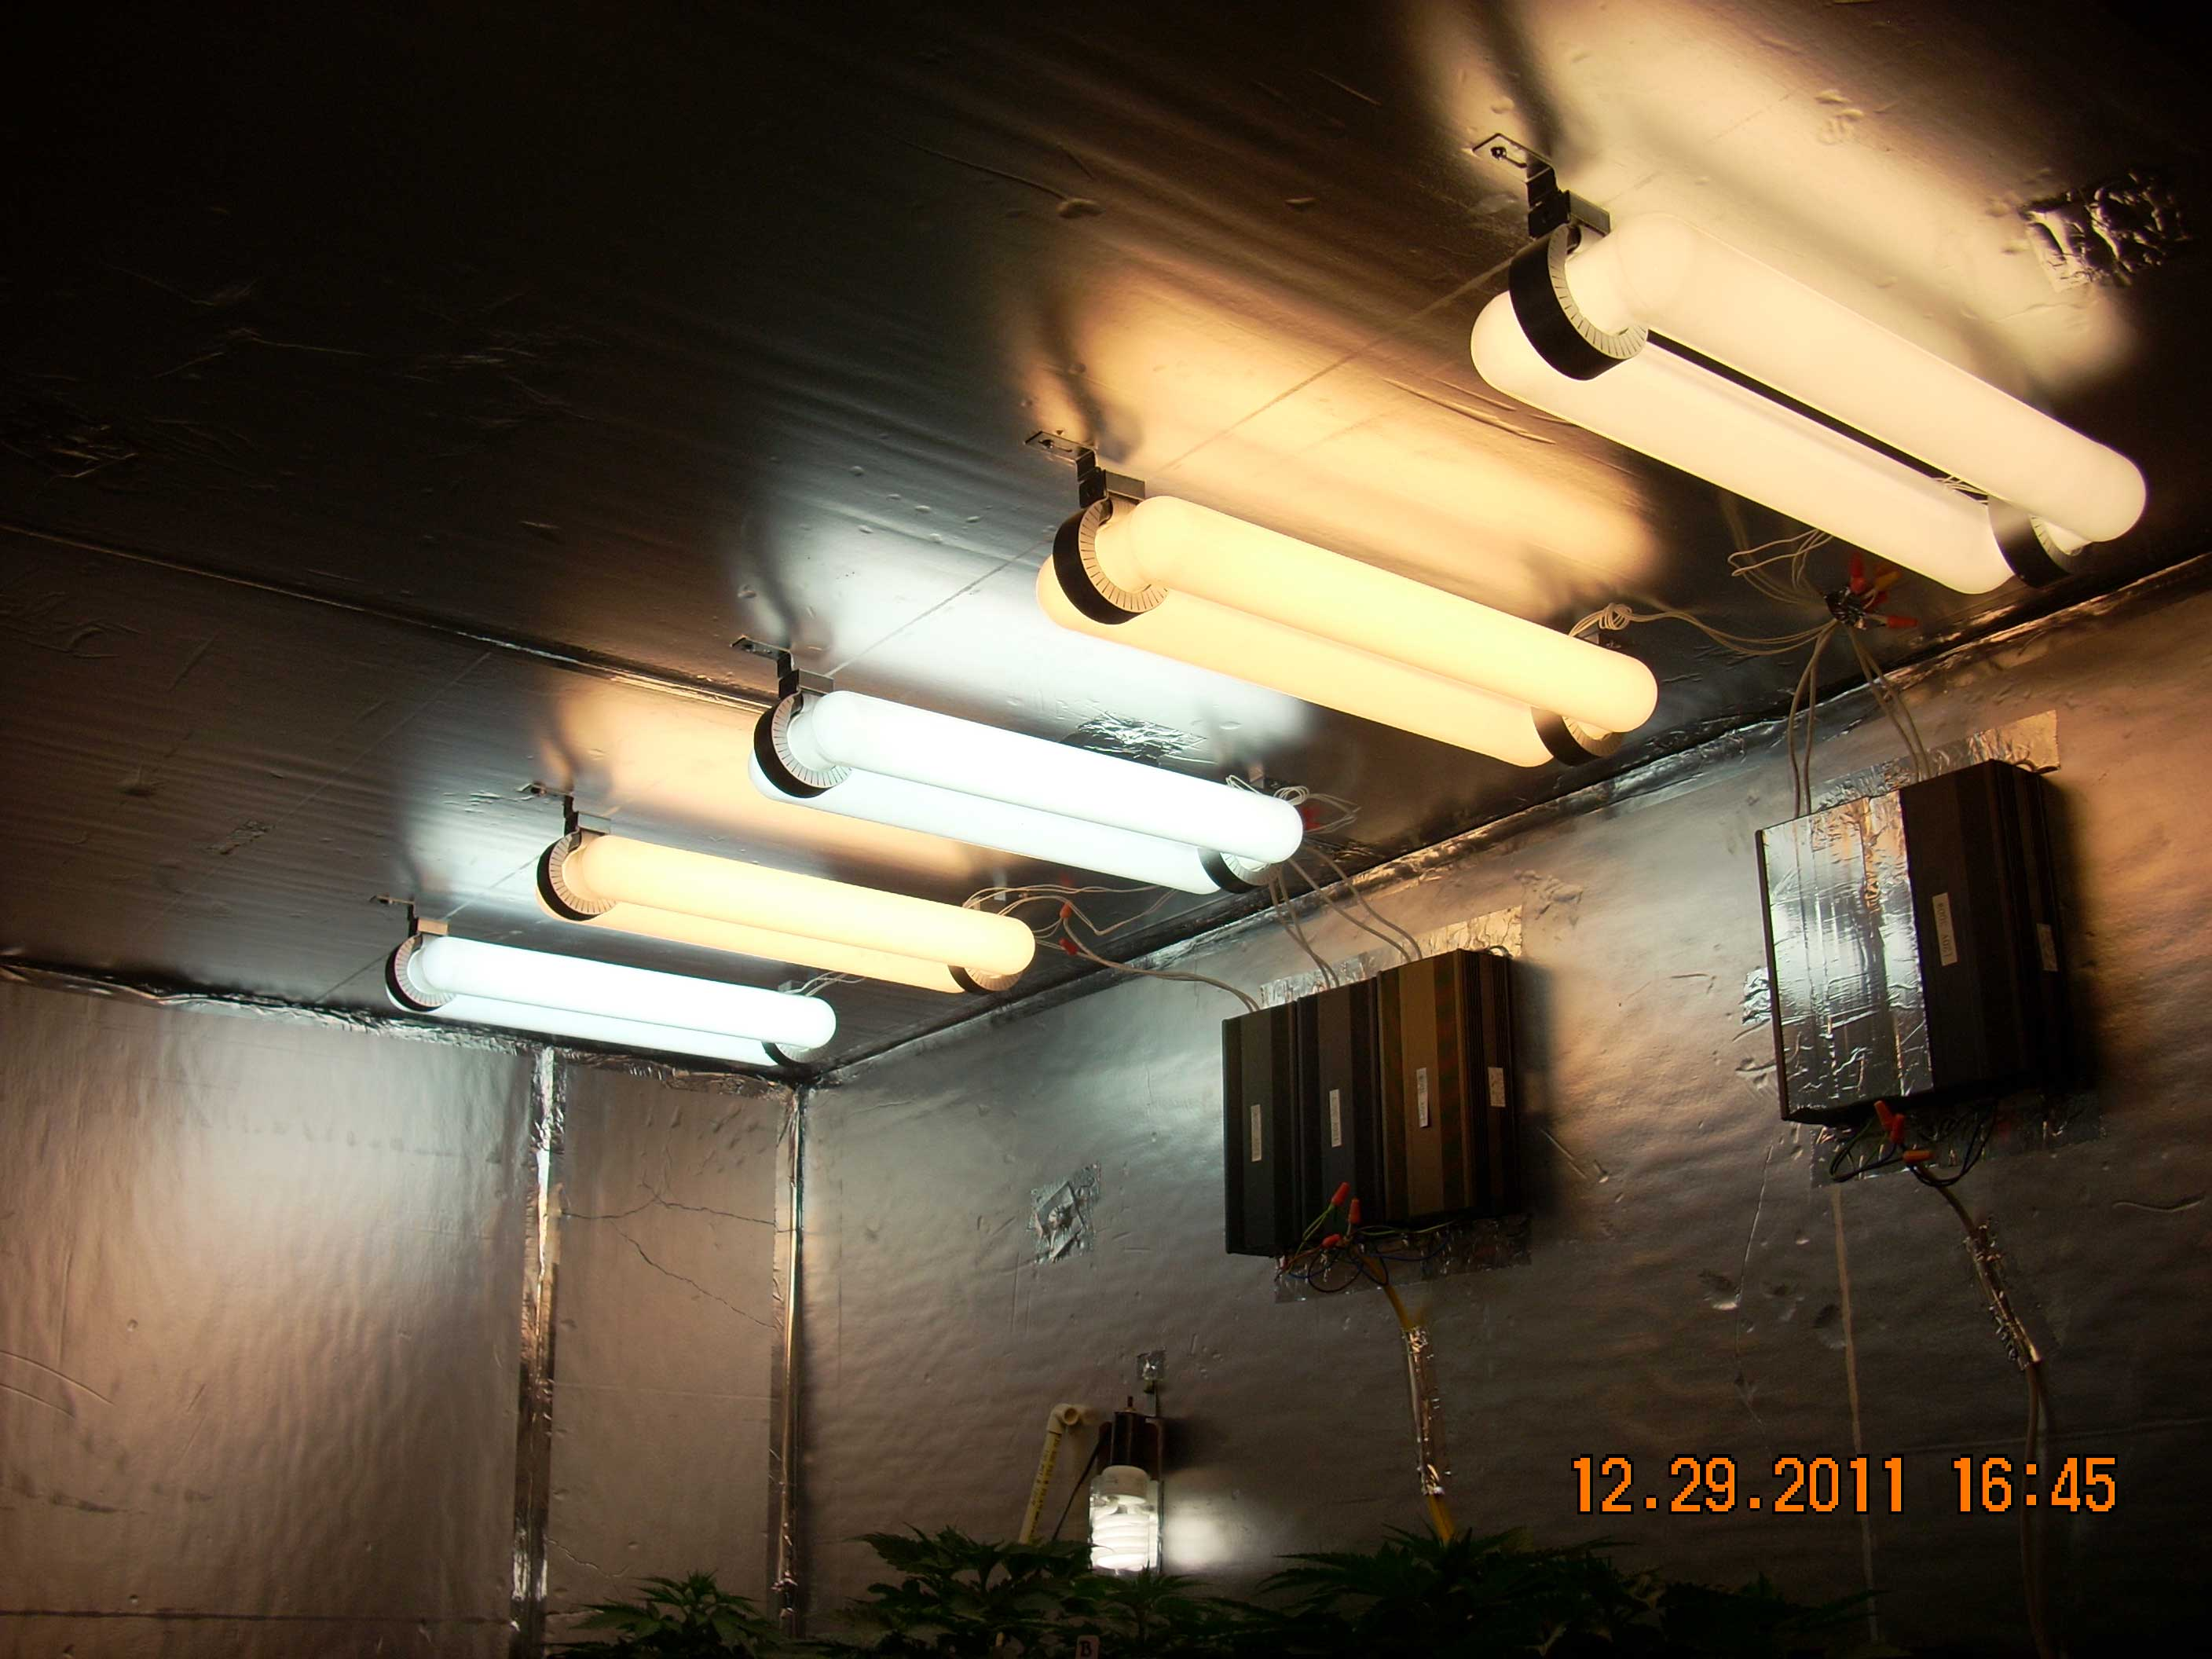 Indoor lighting without electricity